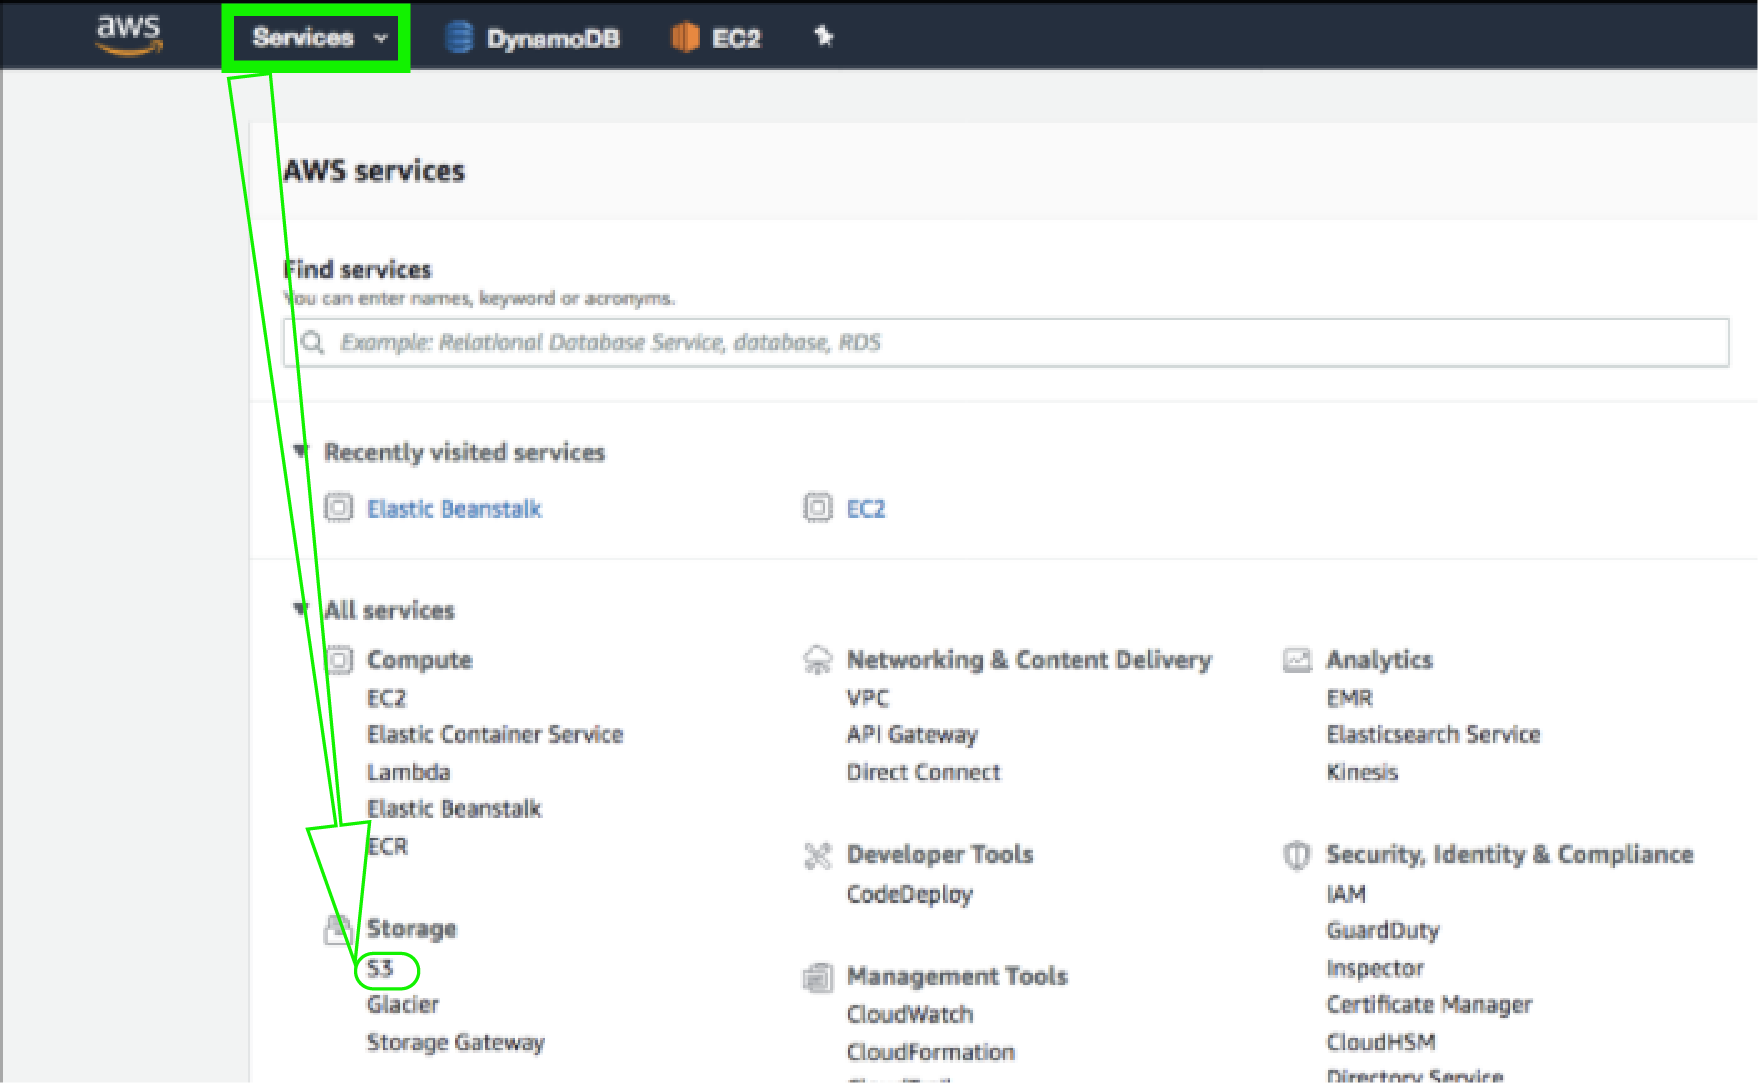 AWS S3 Services - use cases of S3 Intelligent Tiering